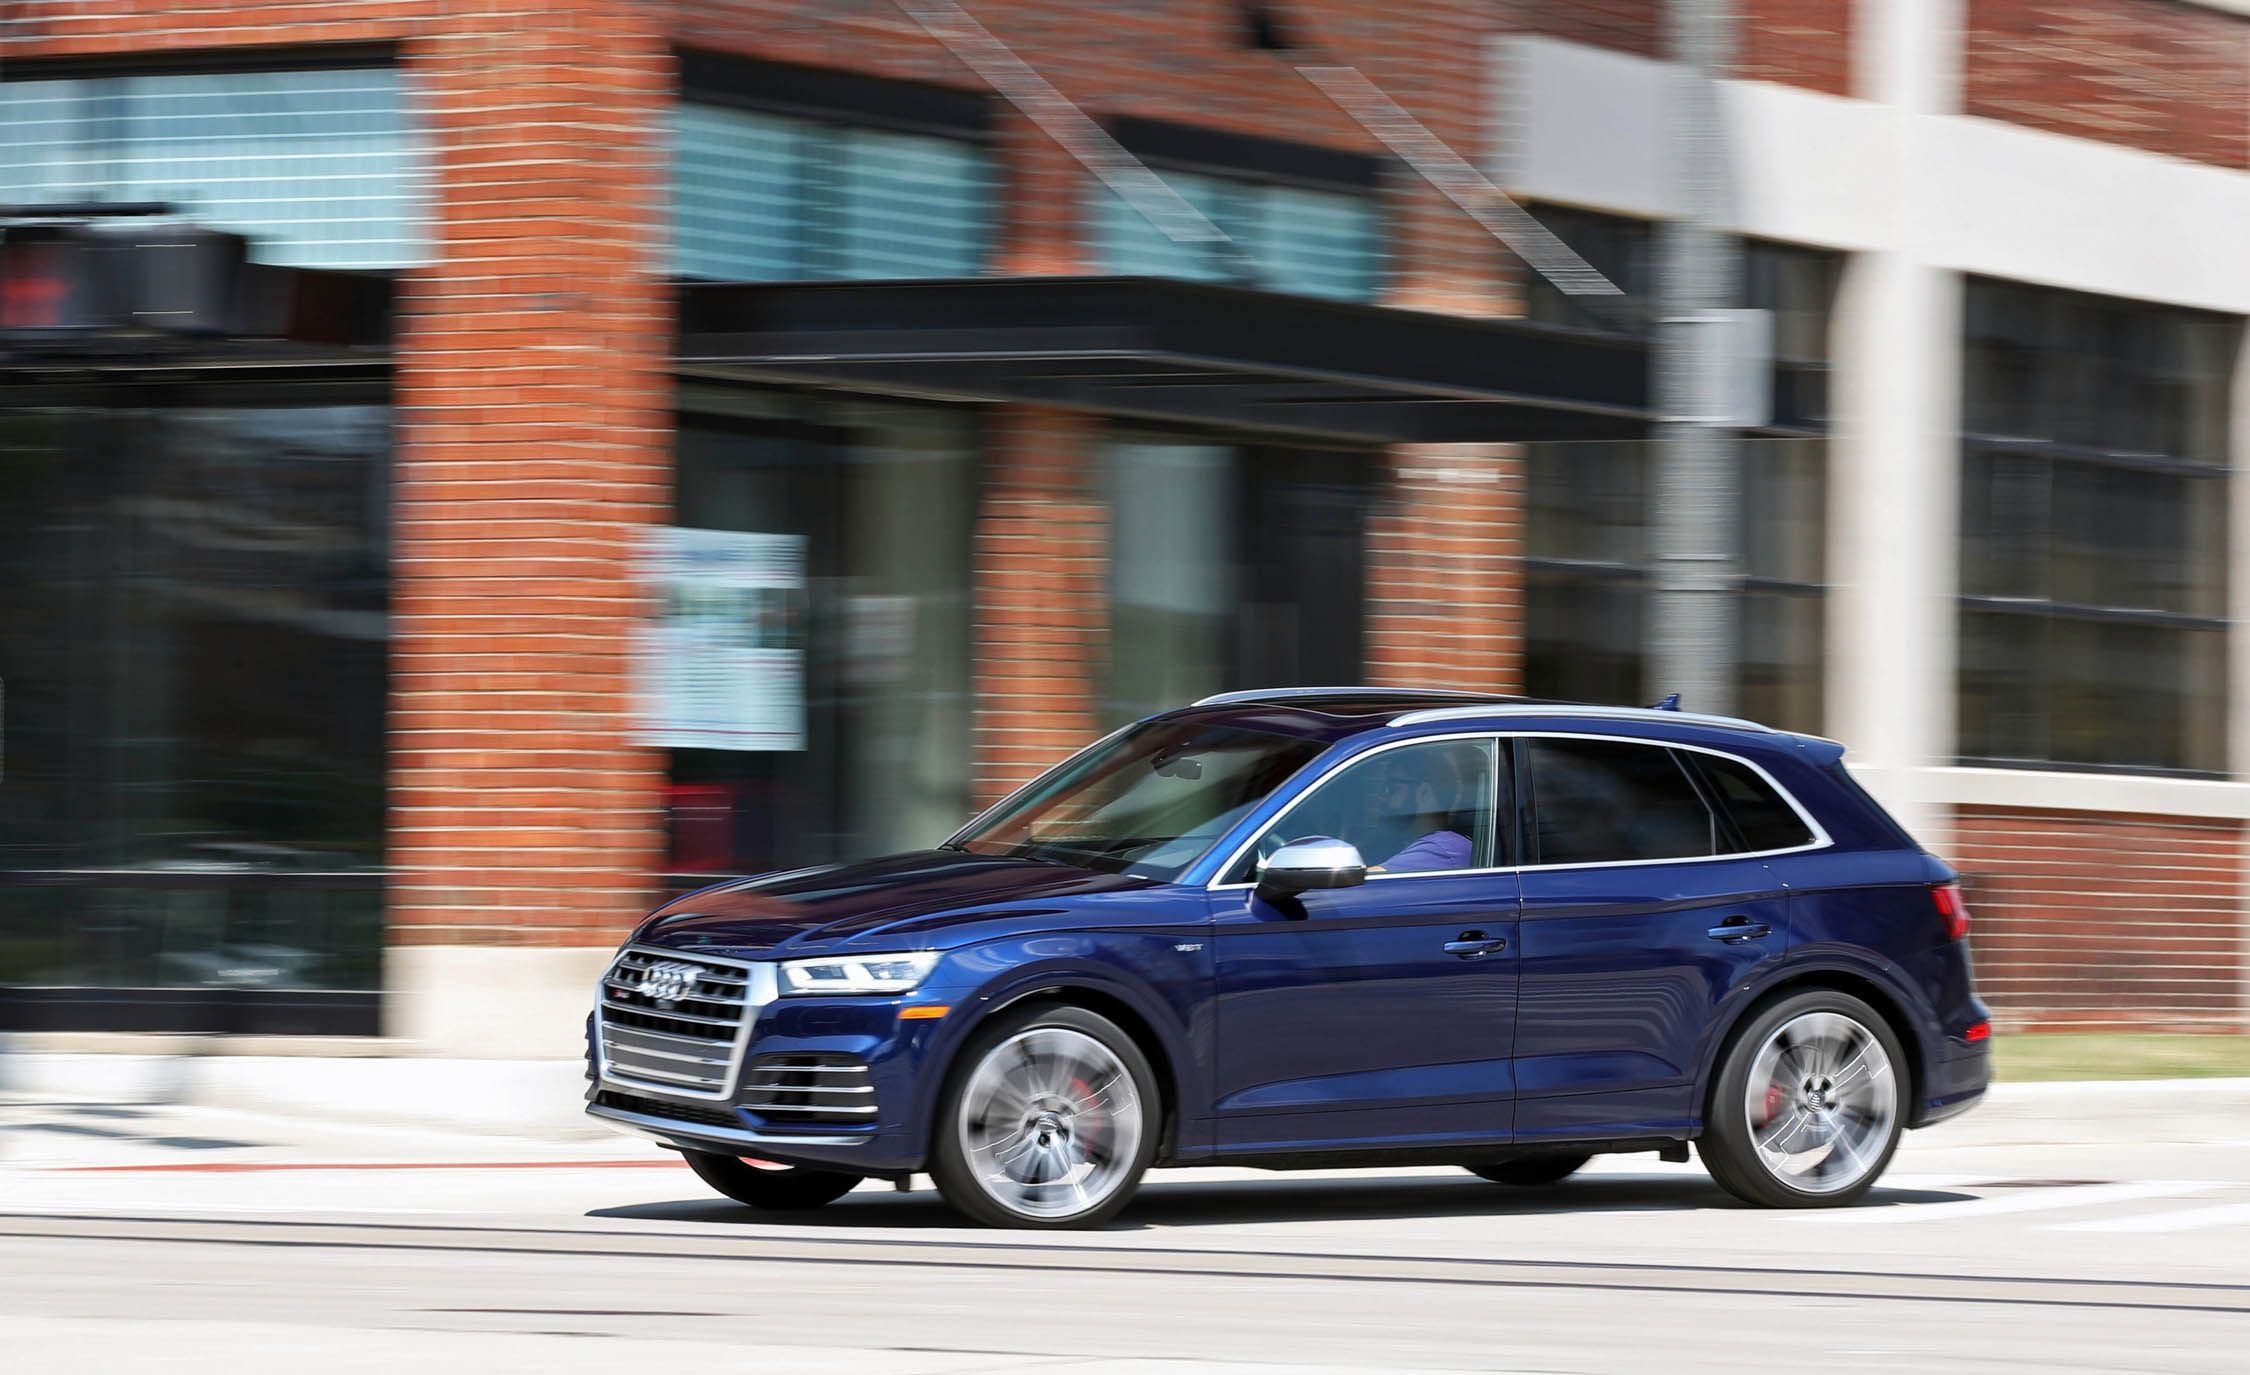 2018 Audi Sq5 Safety And Driver Assistance Review Car And Driver